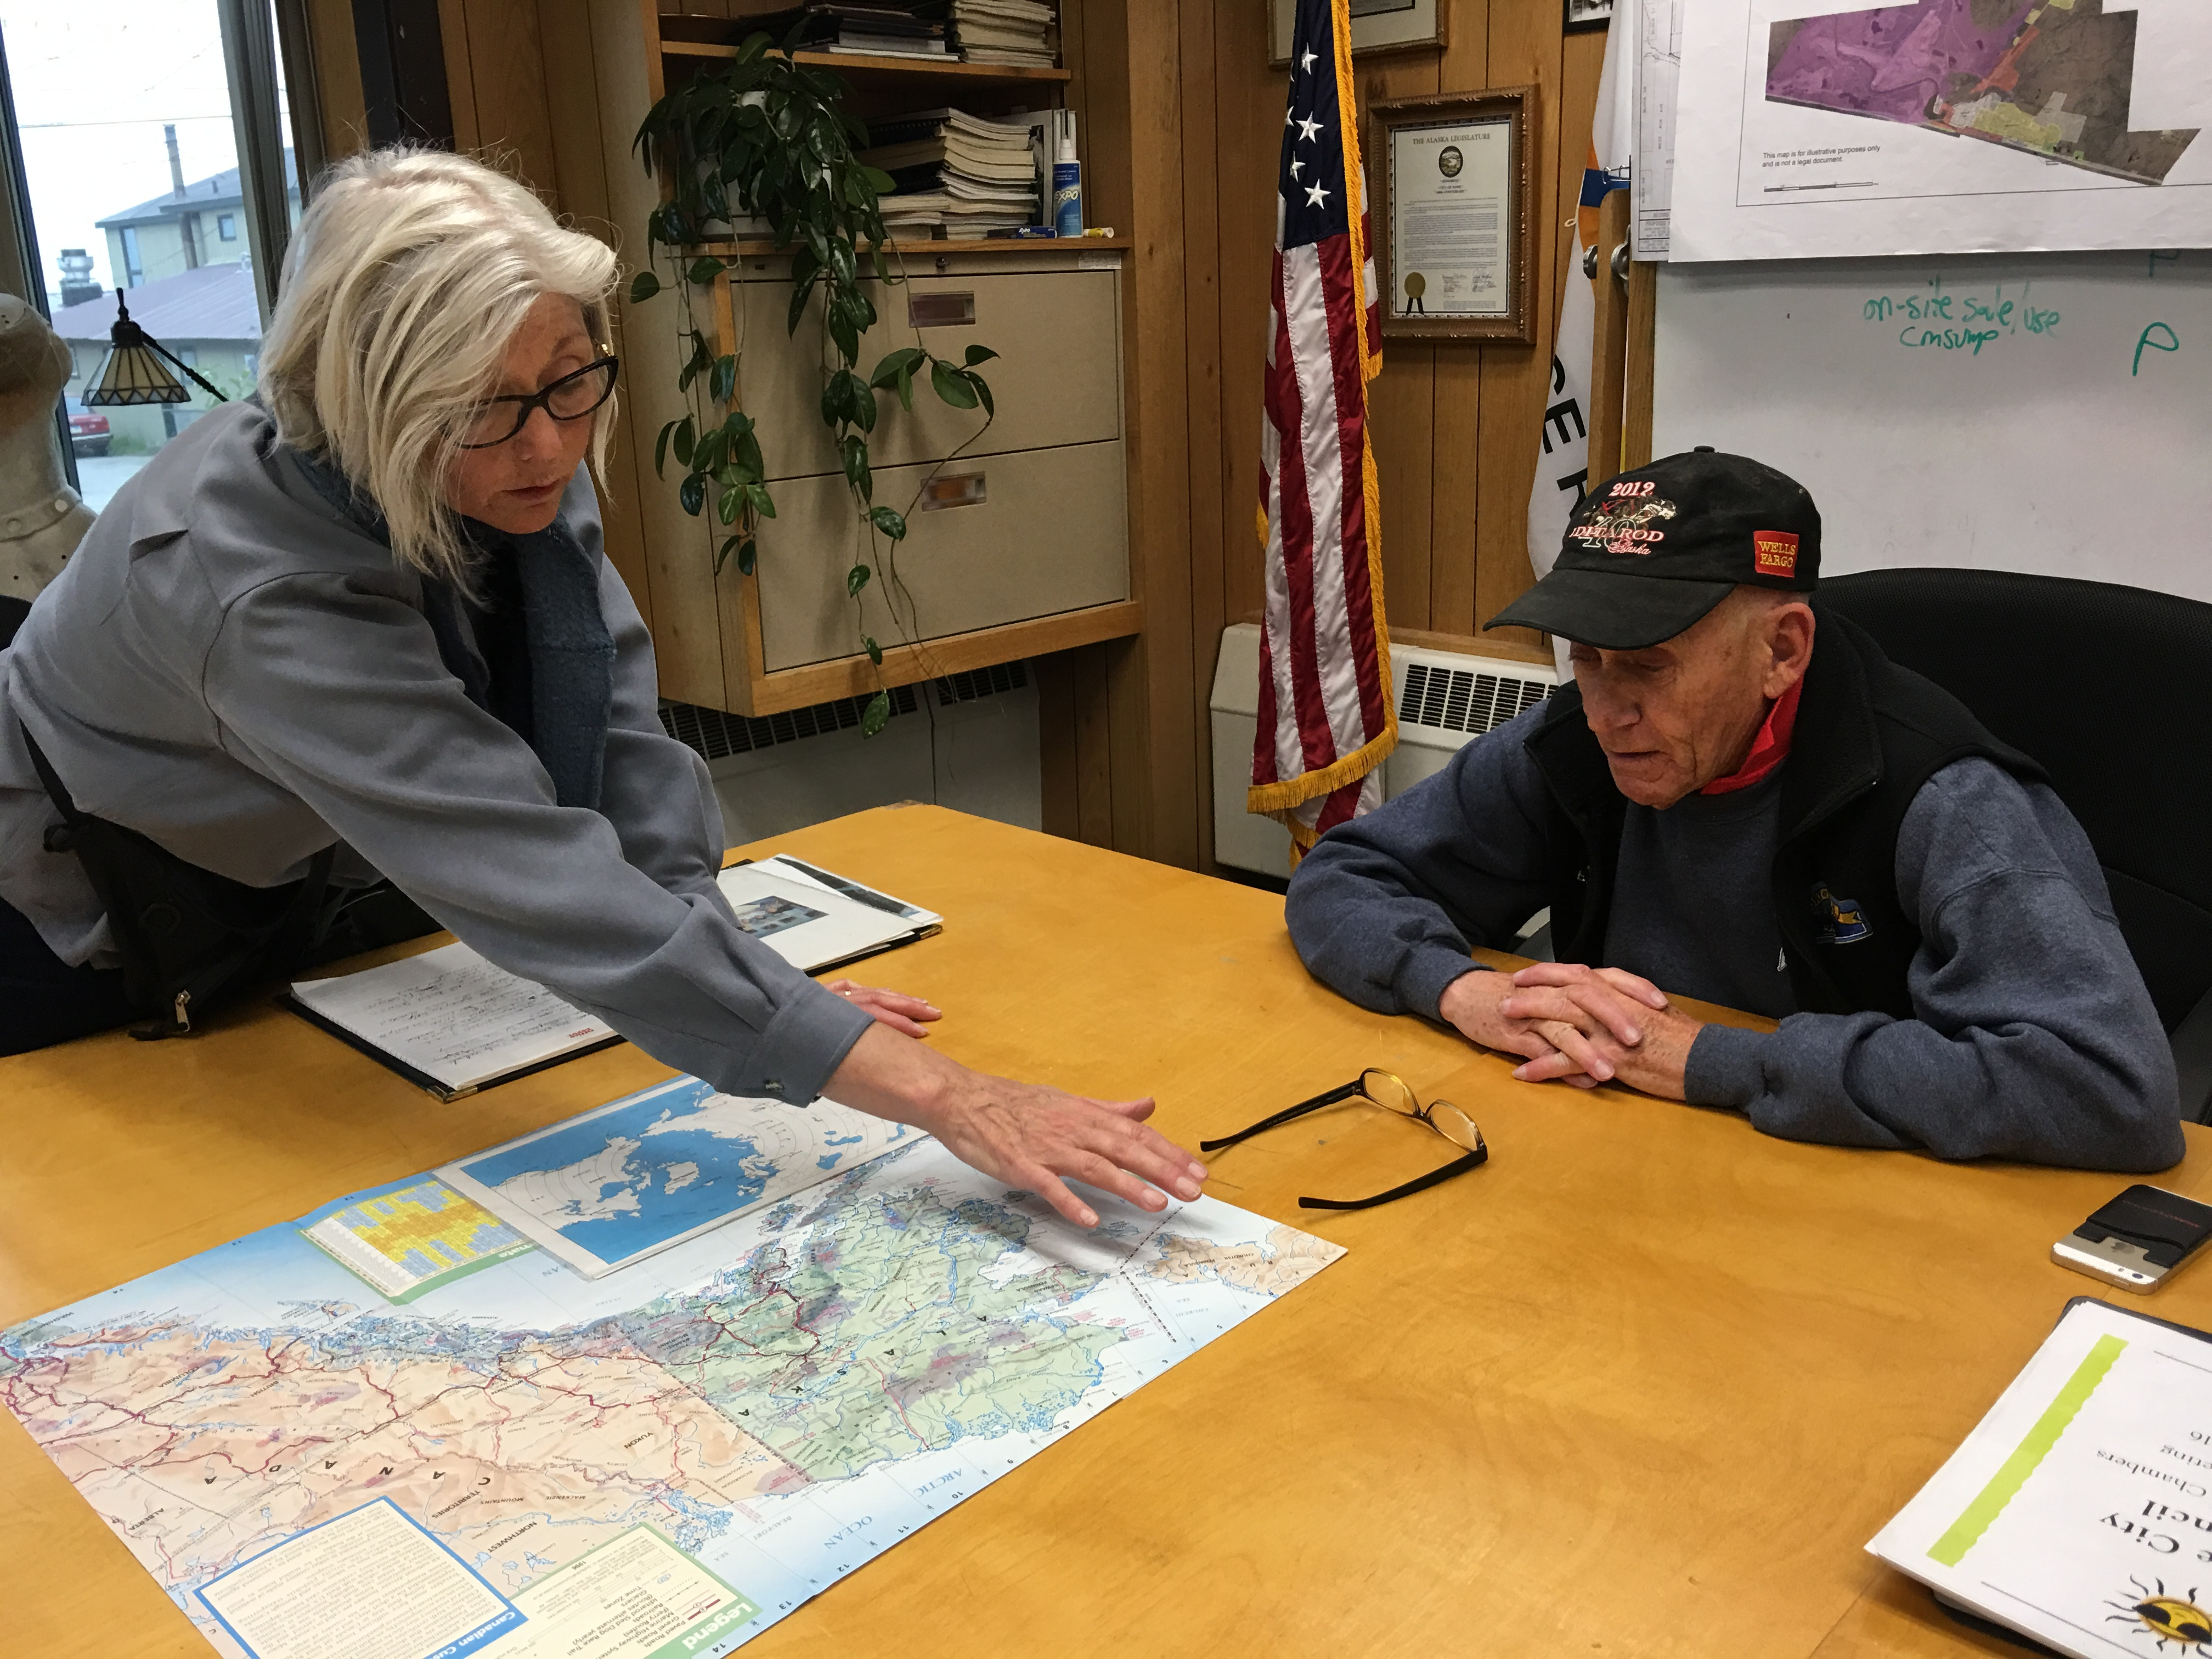 On the day before a 2016 mid-summer expedition to Chukotka, Russia, Tandy Wallack of Circumpolar Expeditions discusses the Diomede Island Family Reunion with Nome Mayor Richard Beneville. Both spoke about the need for closer relations across the Bering Strait. (Kirsten Swann / Alaska Dispatch News)